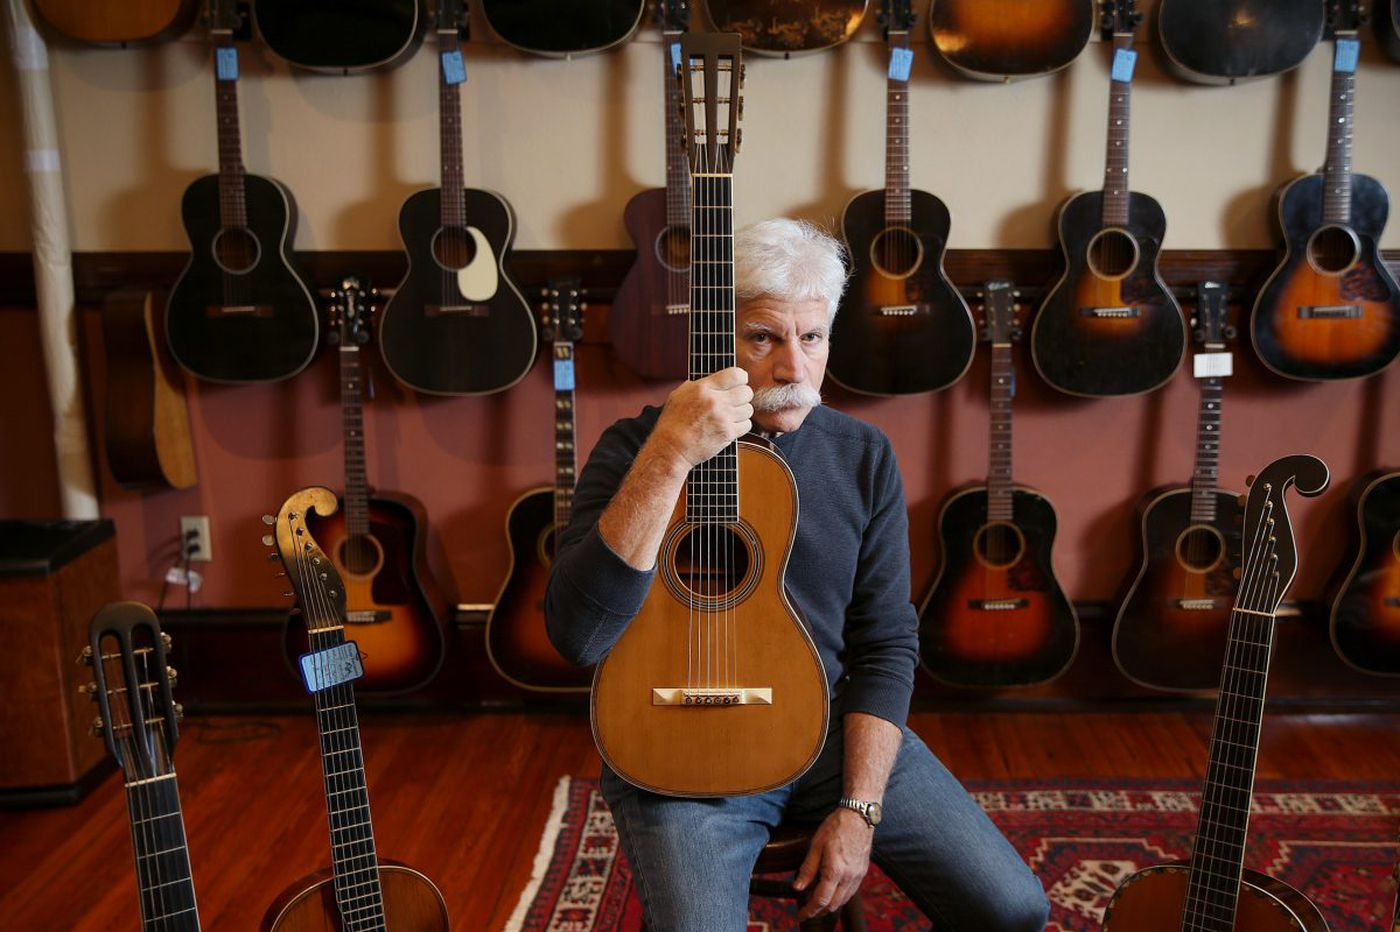 Want to see some really old Martin guitars? This Philly shop hosts a rare exhibition this weekend